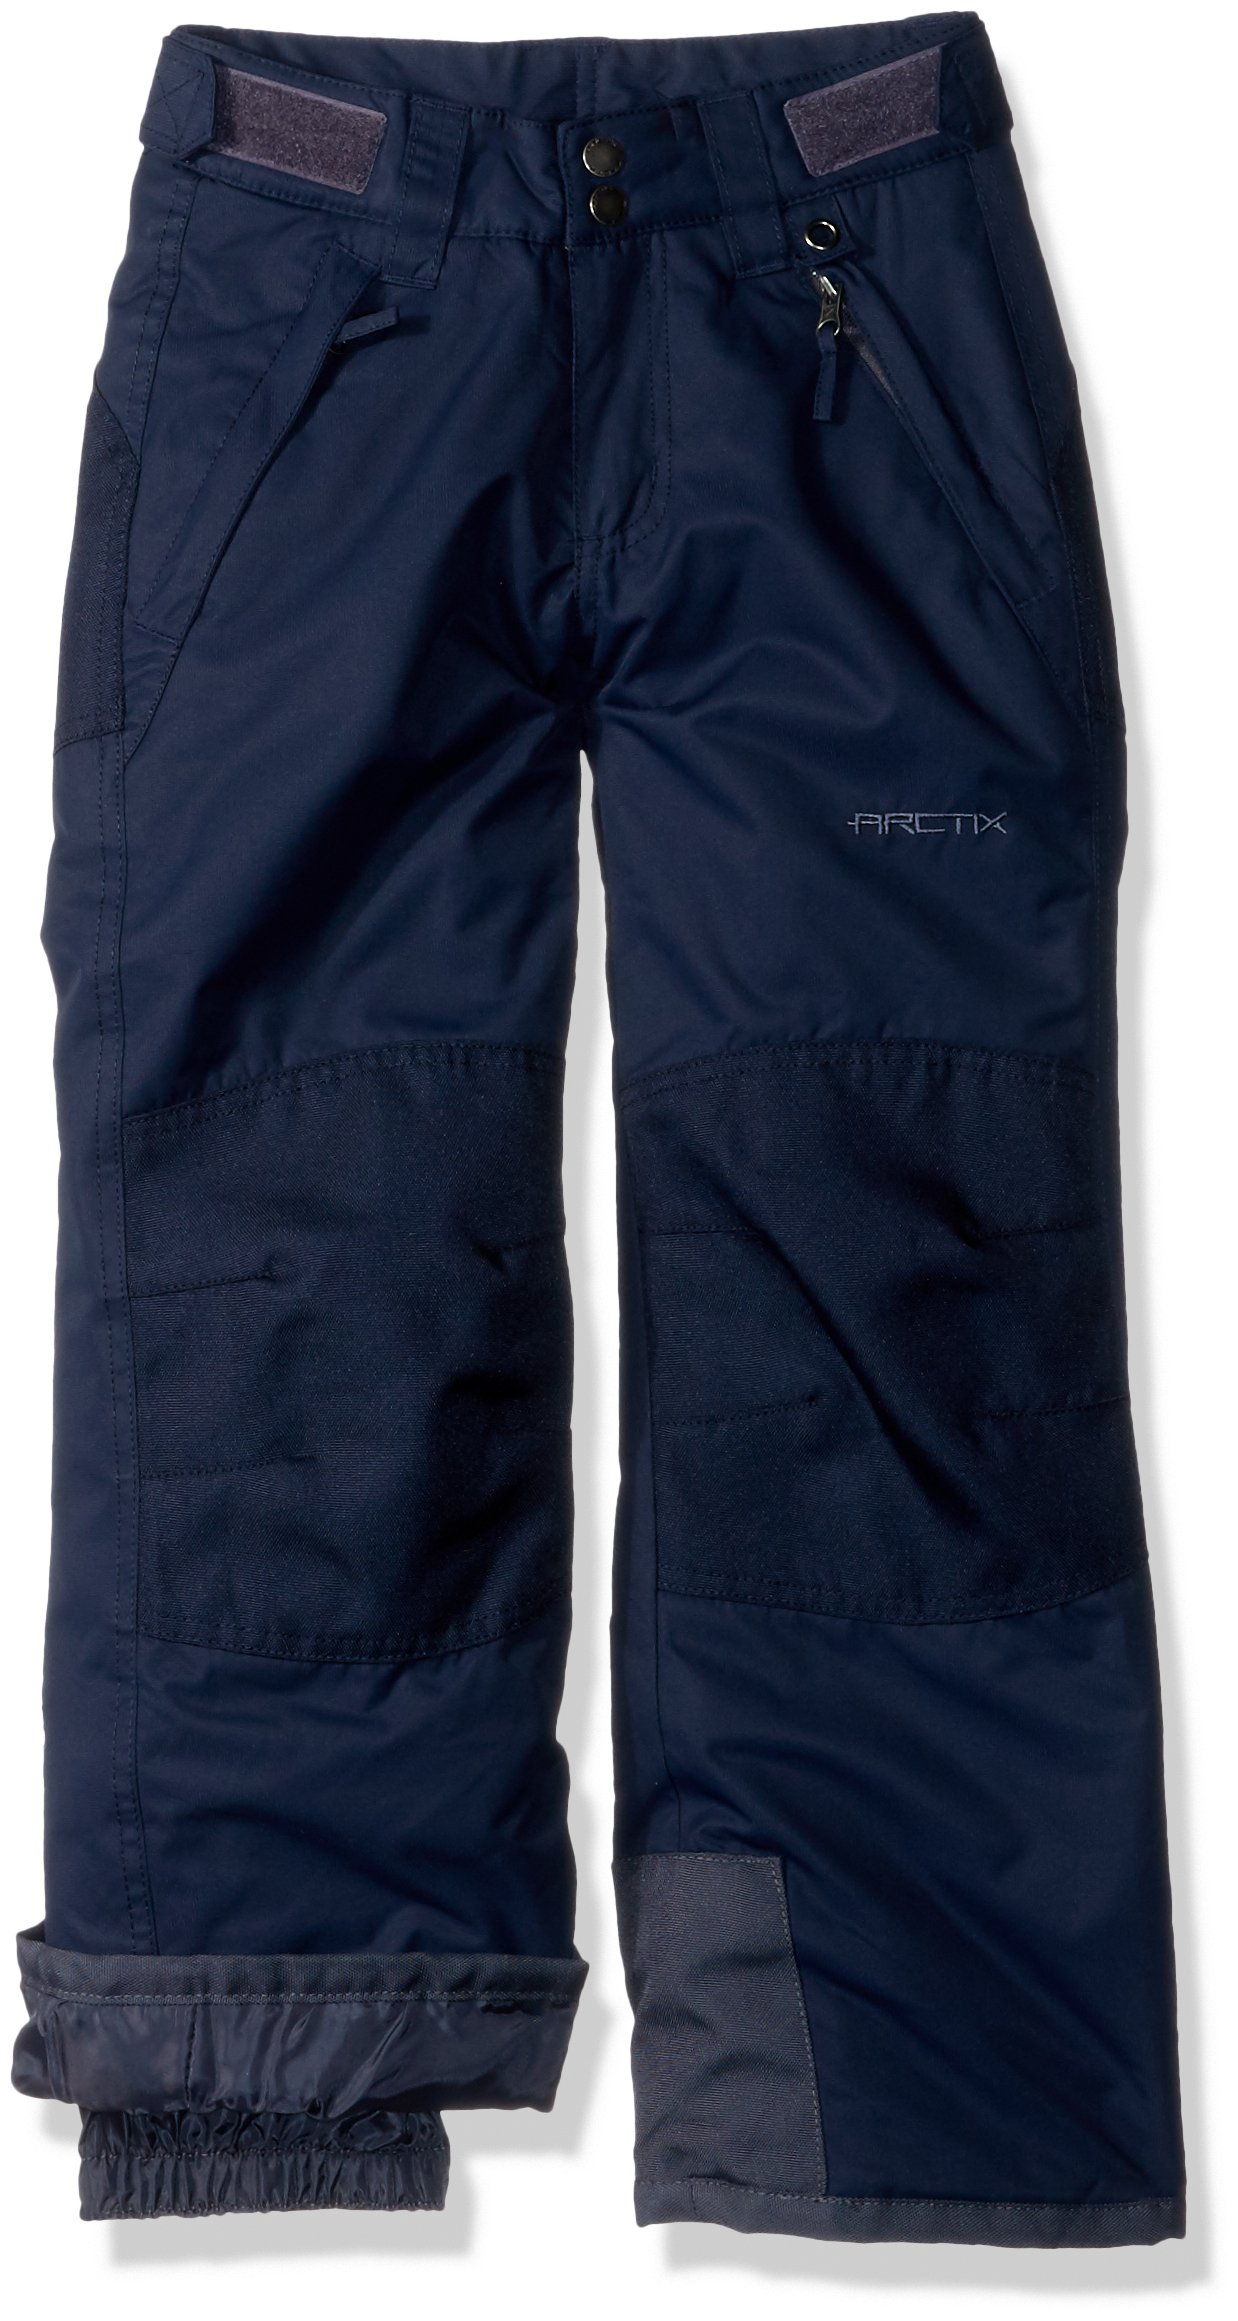 Arctix Youth Snow Pants with Reinforced Knees and Seat, Blue Night, X-Large by Arctix